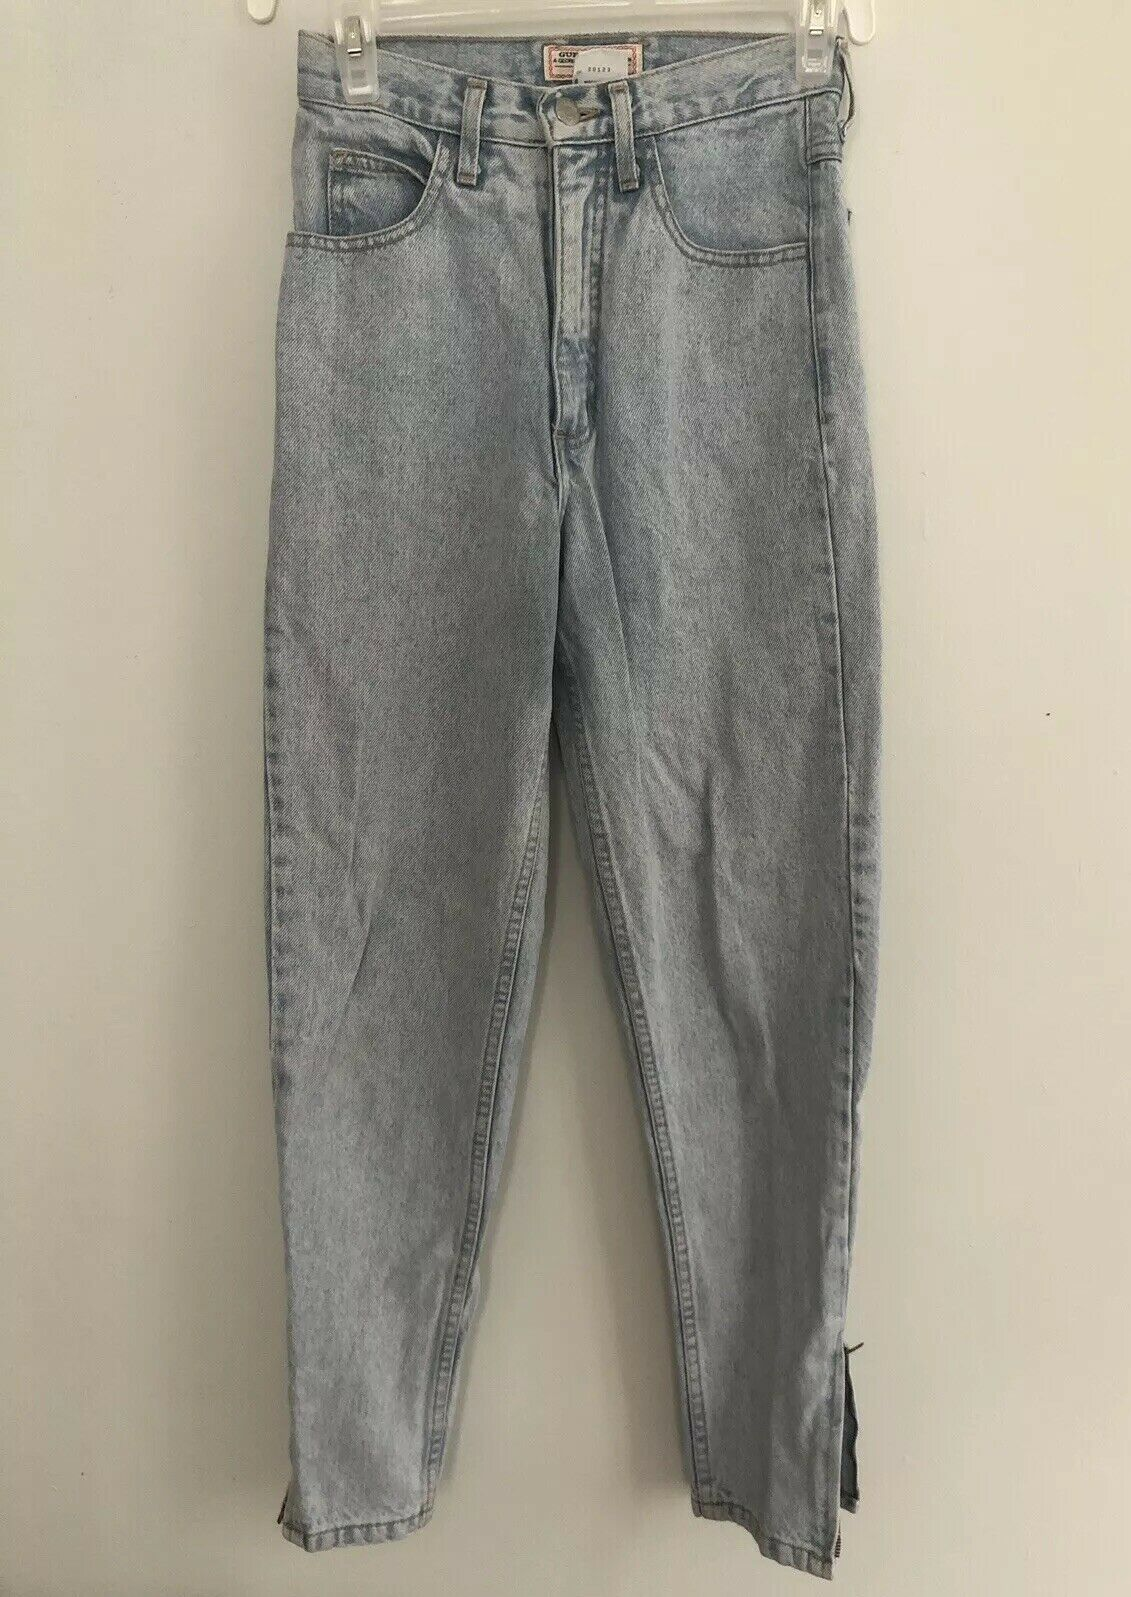 Vintage 80s Guess Jeans Mom Tapered Zipper Ankle High Waist Light Wash Stonewash